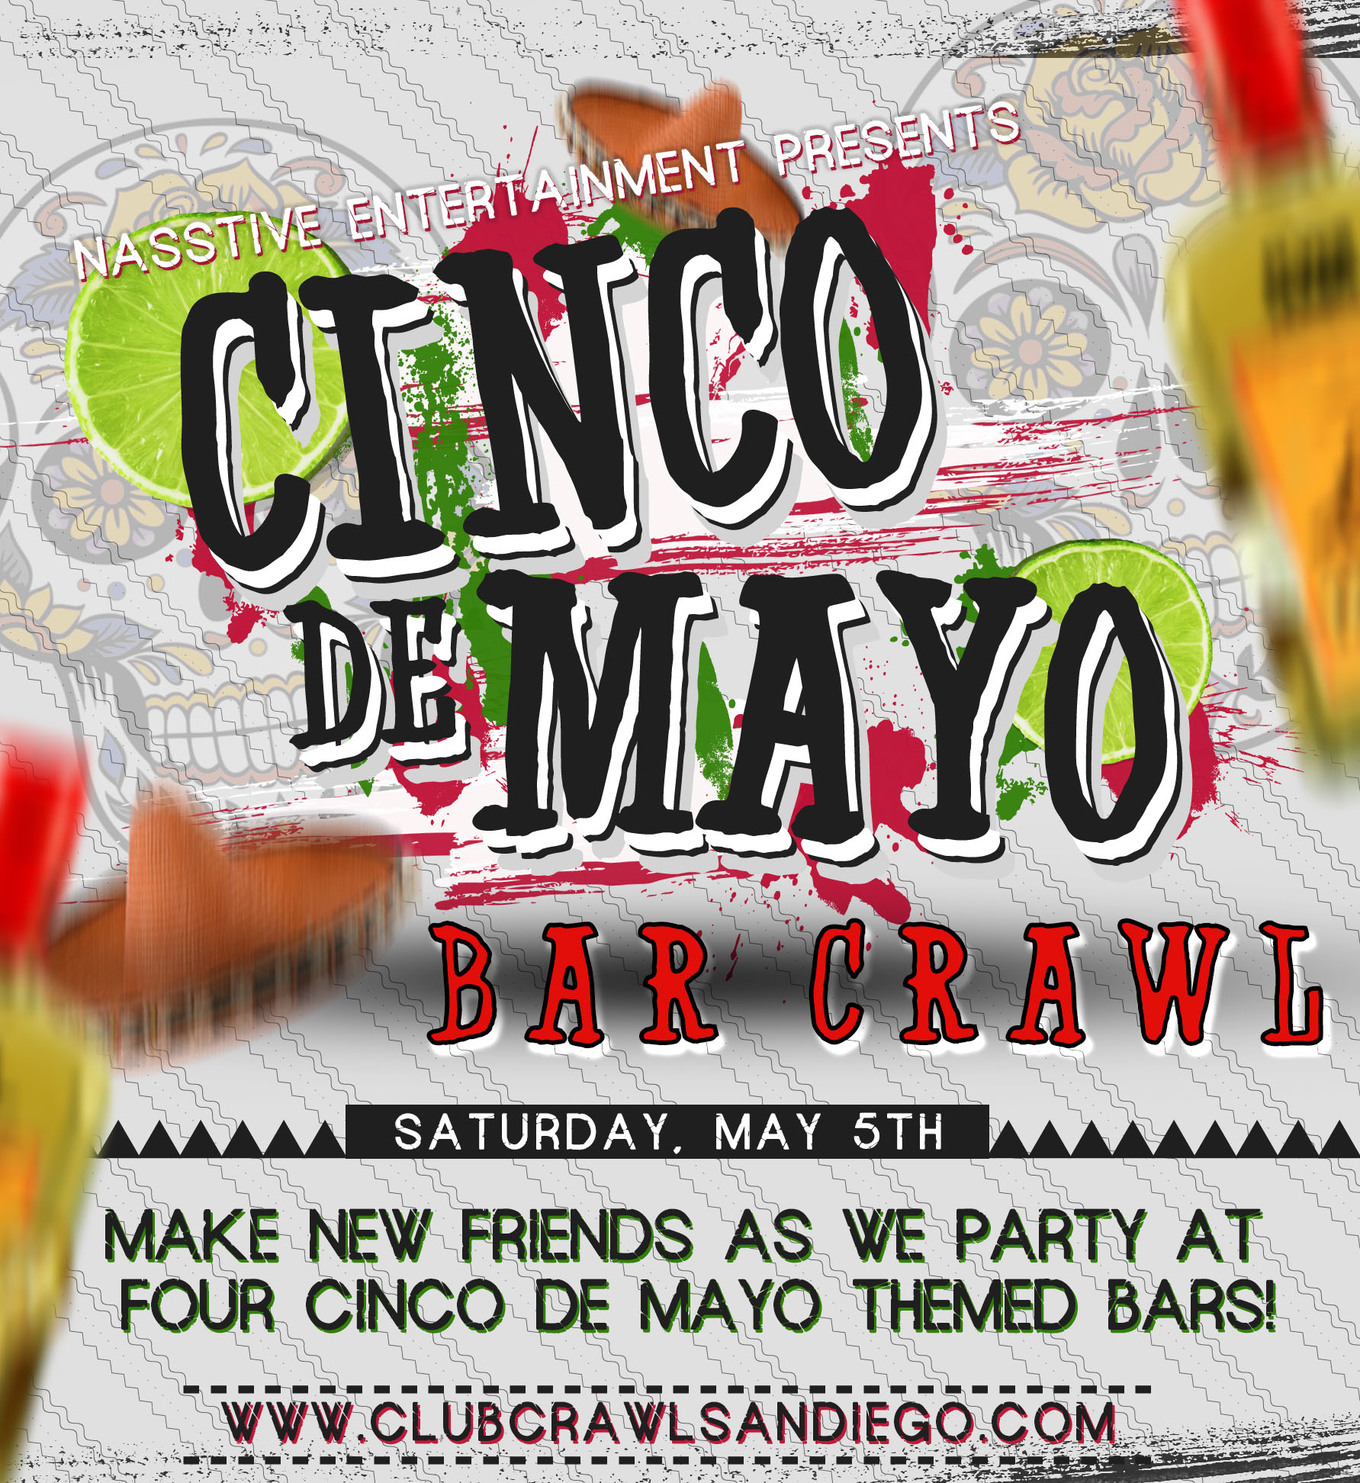 Sango Cinco De Mayo Bar Crawl Meetup Online Sales Are Now Closed Tickets May Be Purchased At The Event Tickets American Junkie San Go